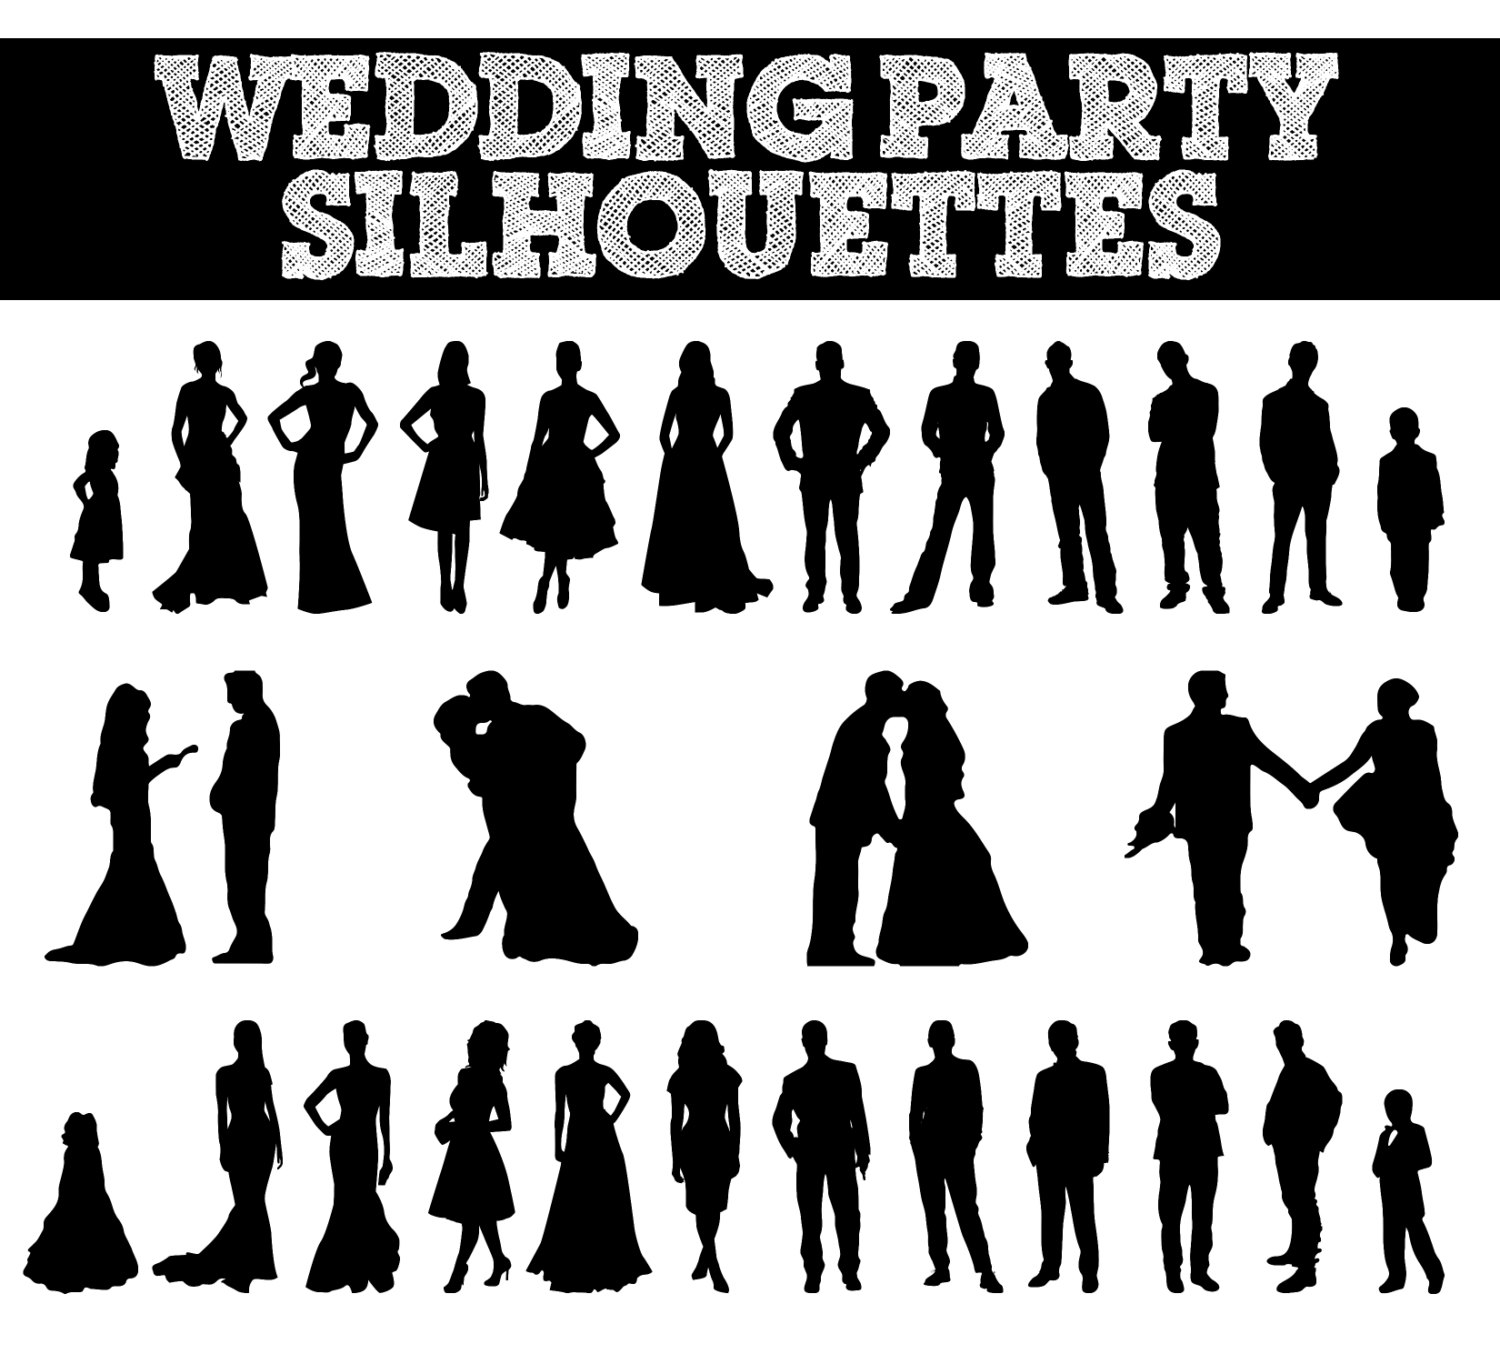 bridesmaid clipart silhouetteShowing Pic-bridesmaid clipart silhouetteShowing Pic Gallery For Wedding Party Silhouette Clip Art RkSnJJUp | Silhouette | Pinterest | Romantic, Wedding and Couple-4